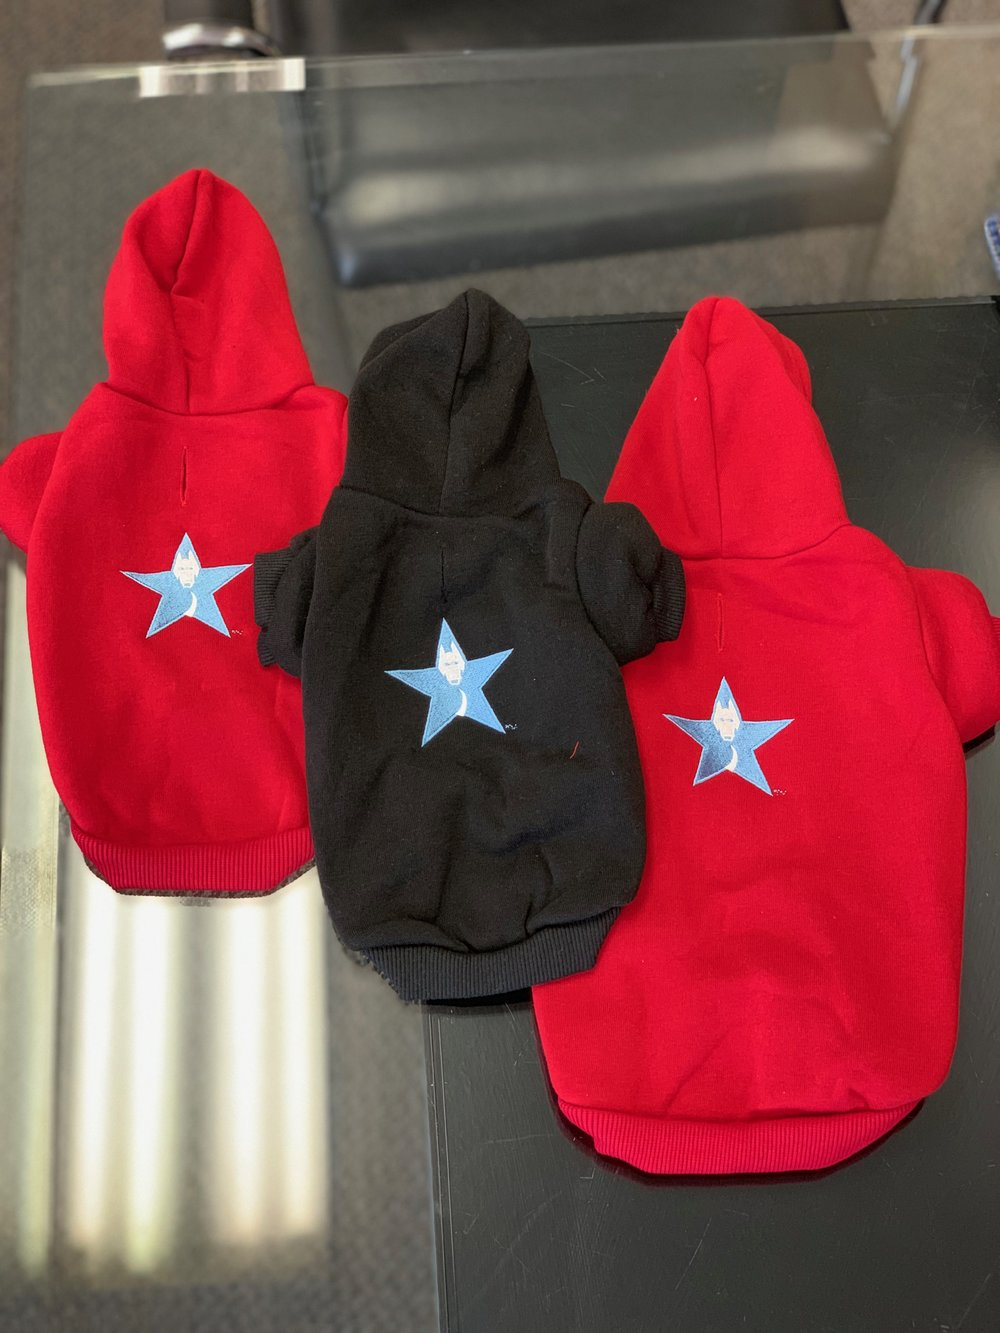 Doggie Sweat jackets - available upon request with training package.